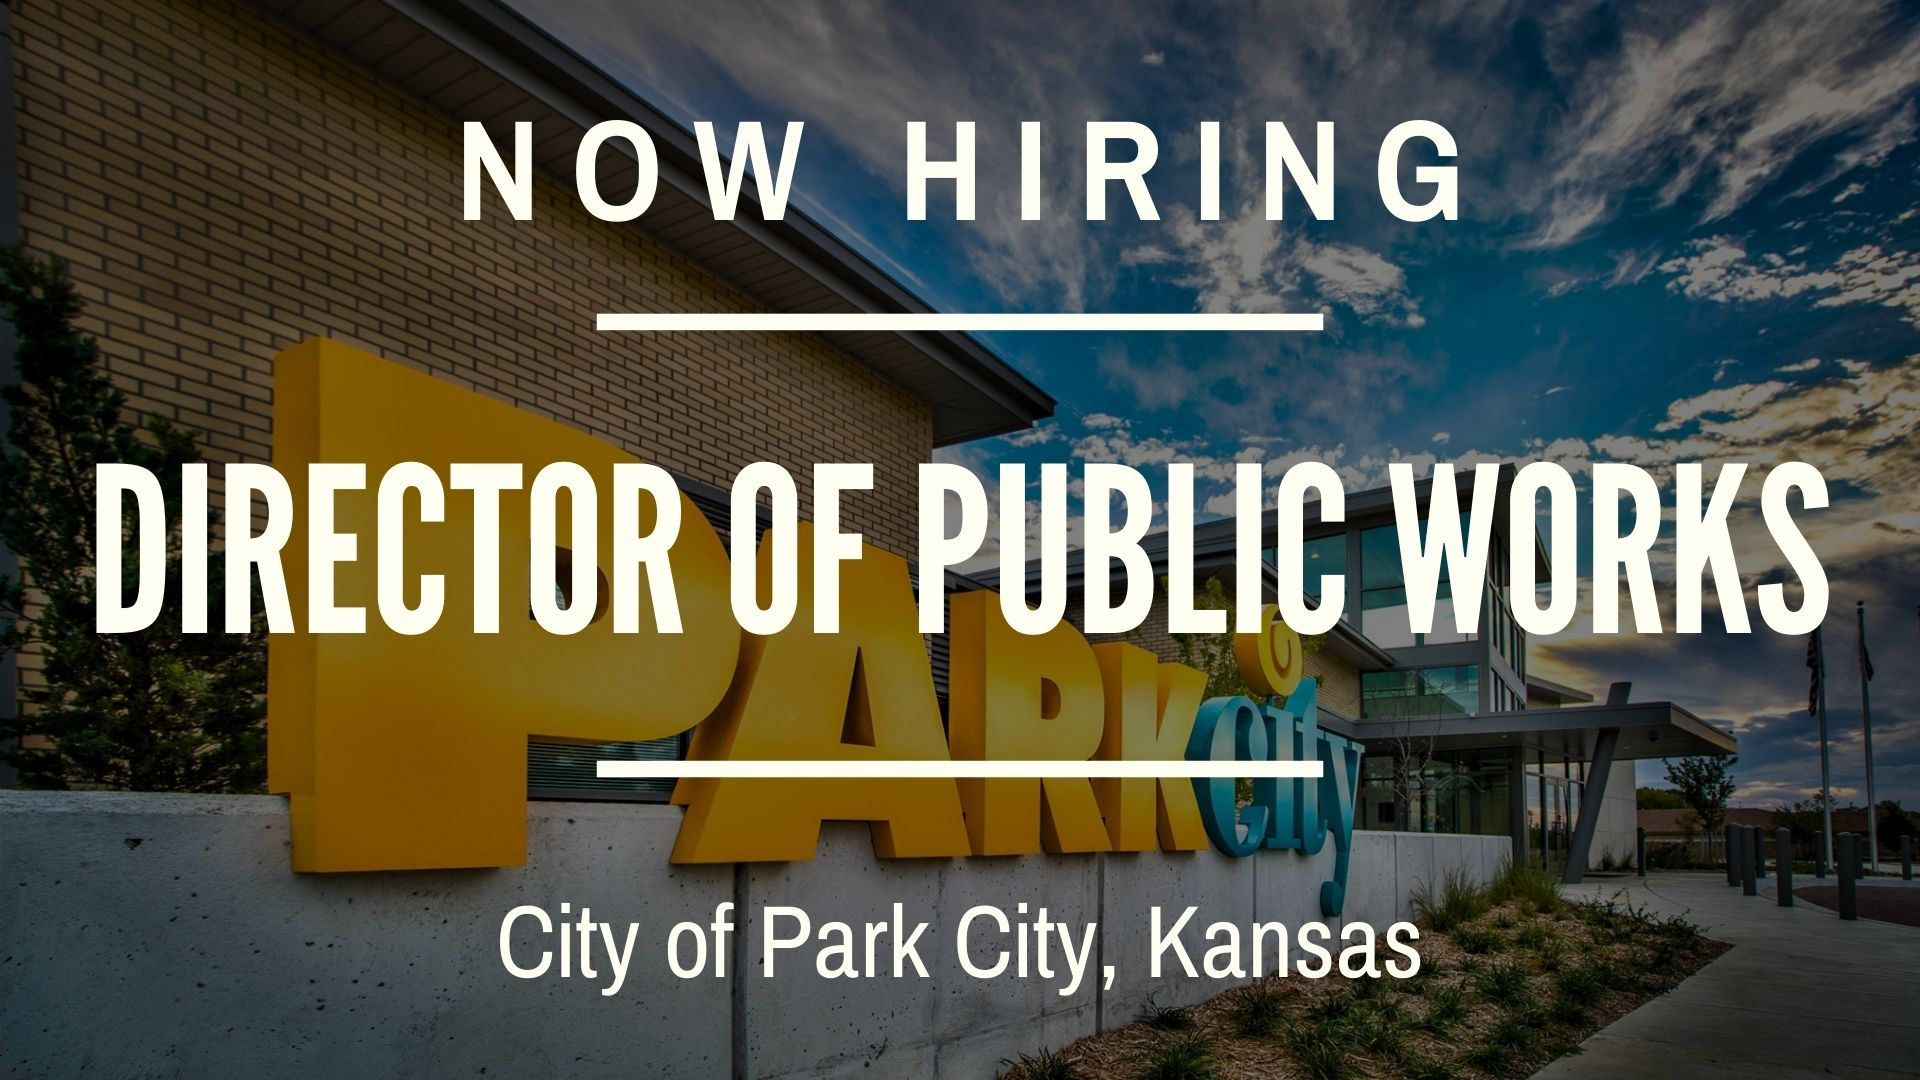 Now Hiring Director of Public Works